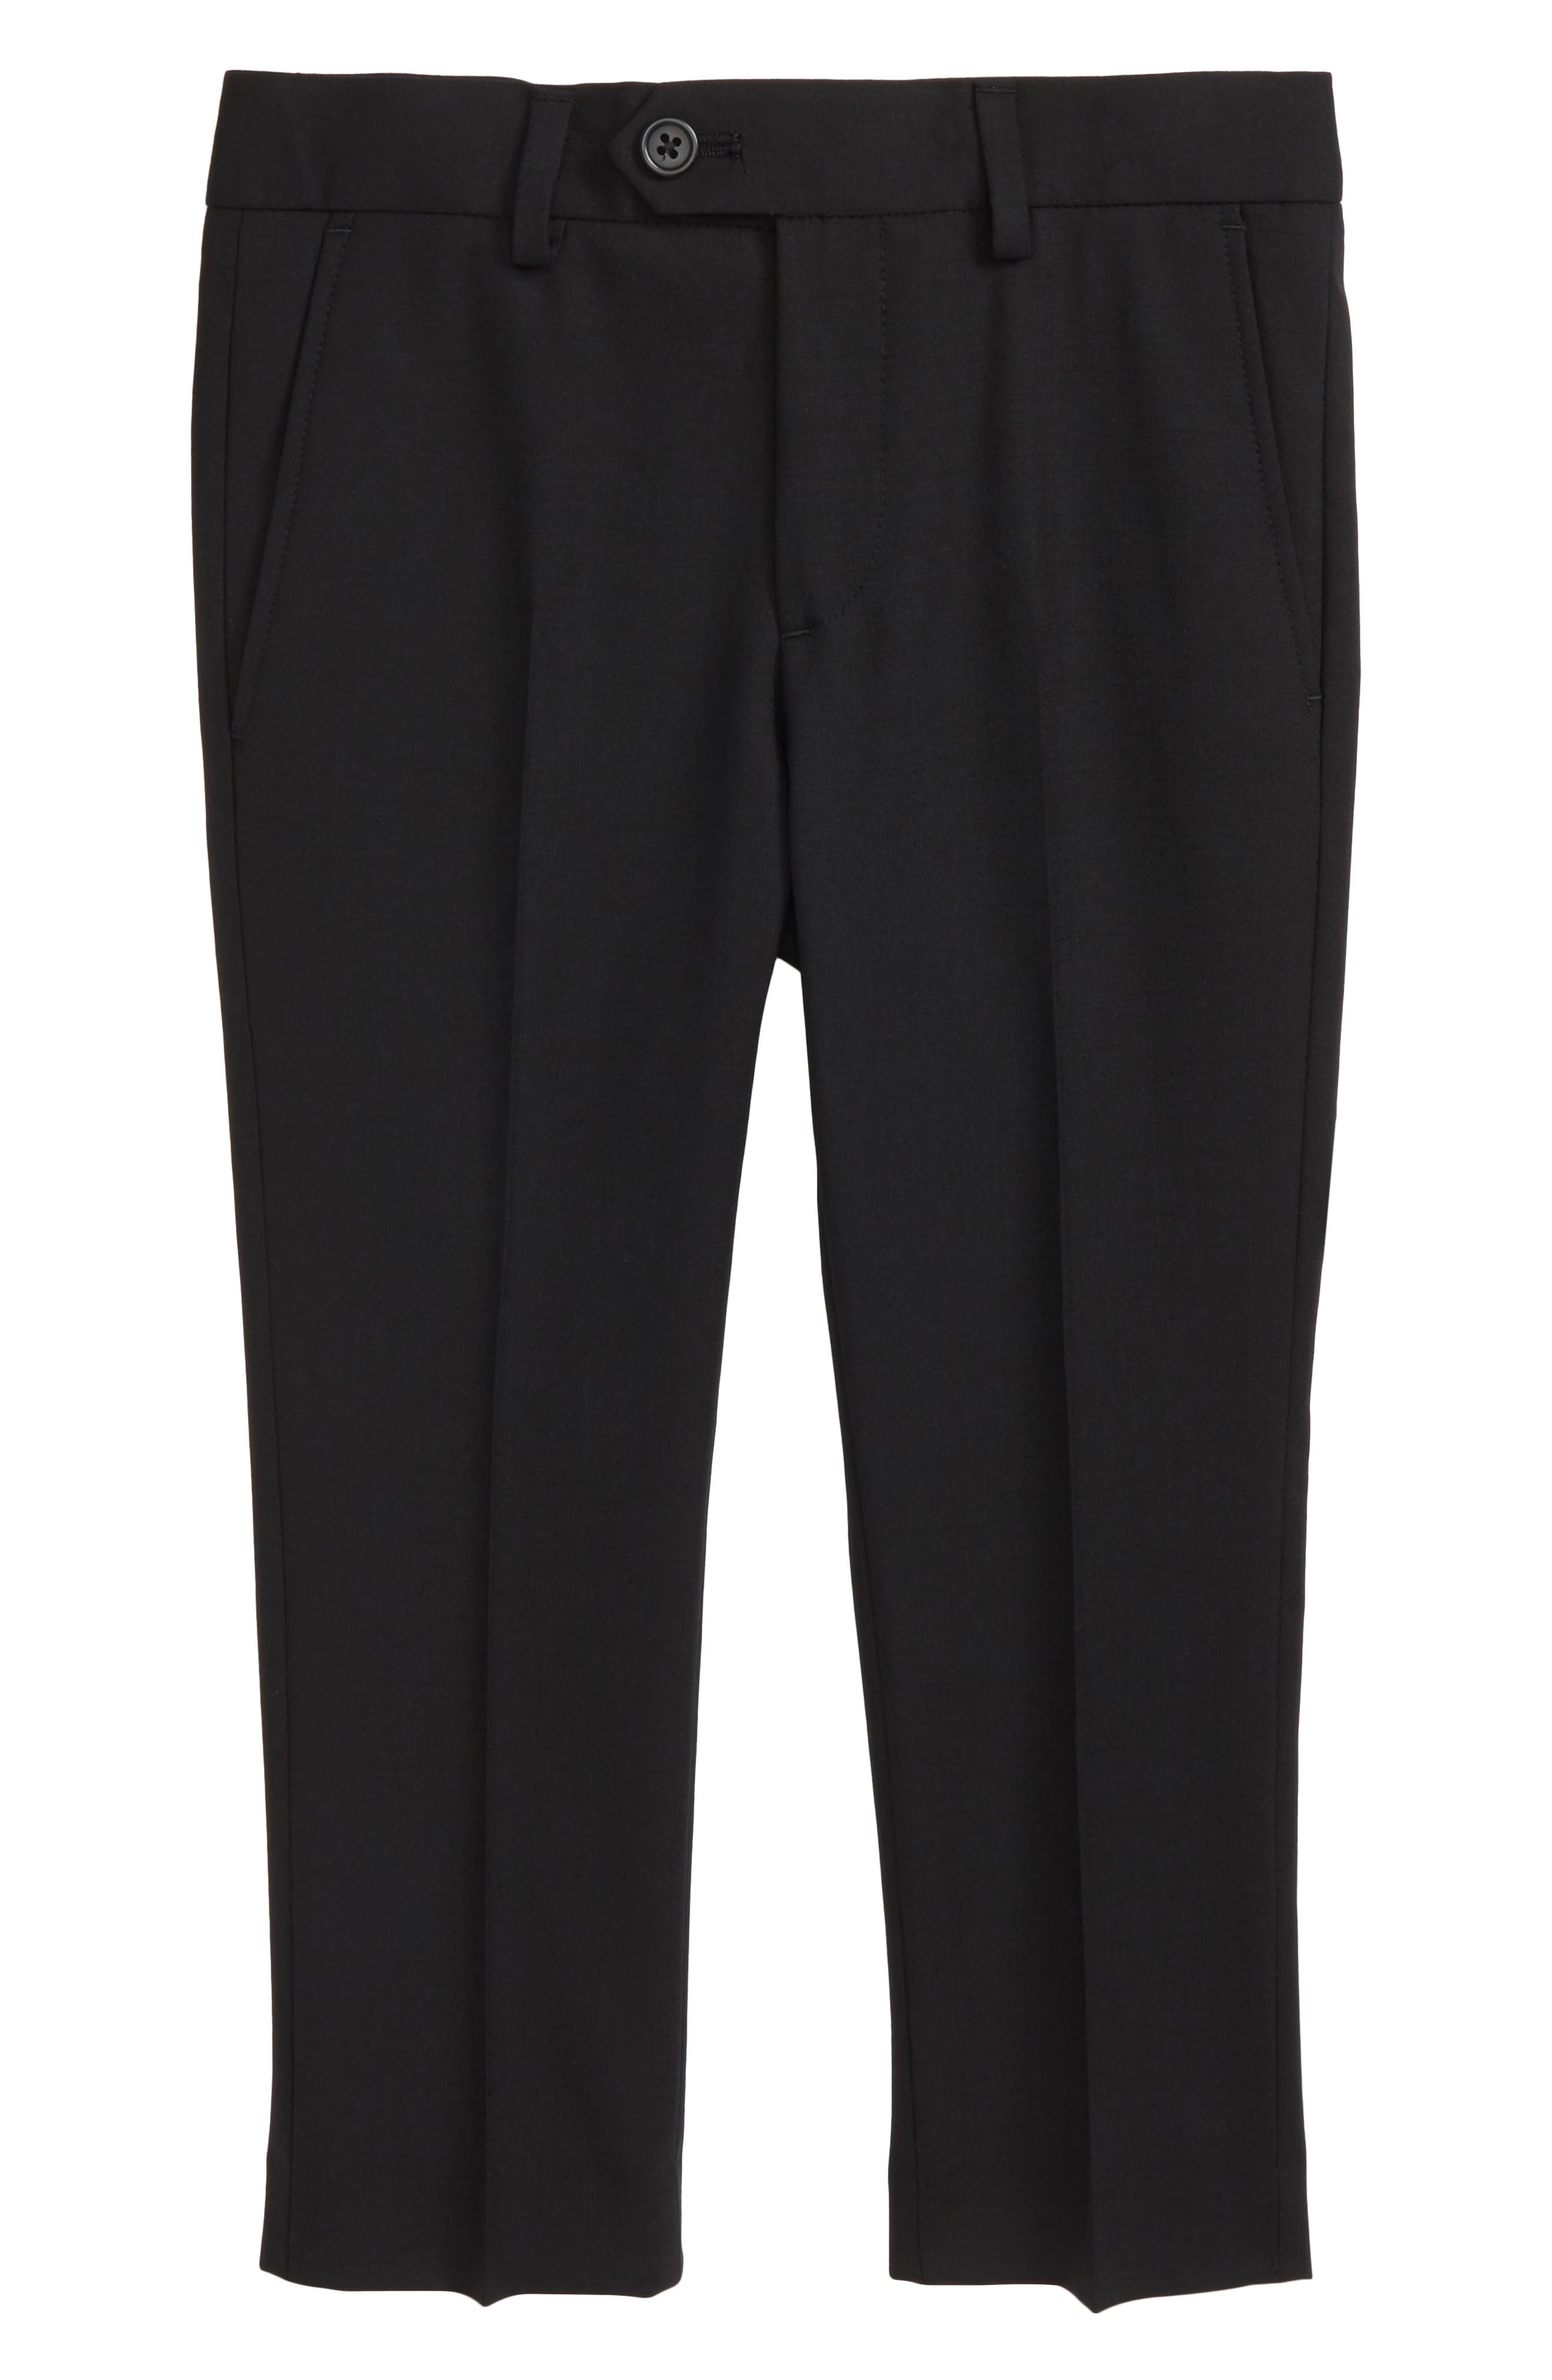 Solid Wool Blend Flat Front Trousers,                             Main thumbnail 1, color,                             Black